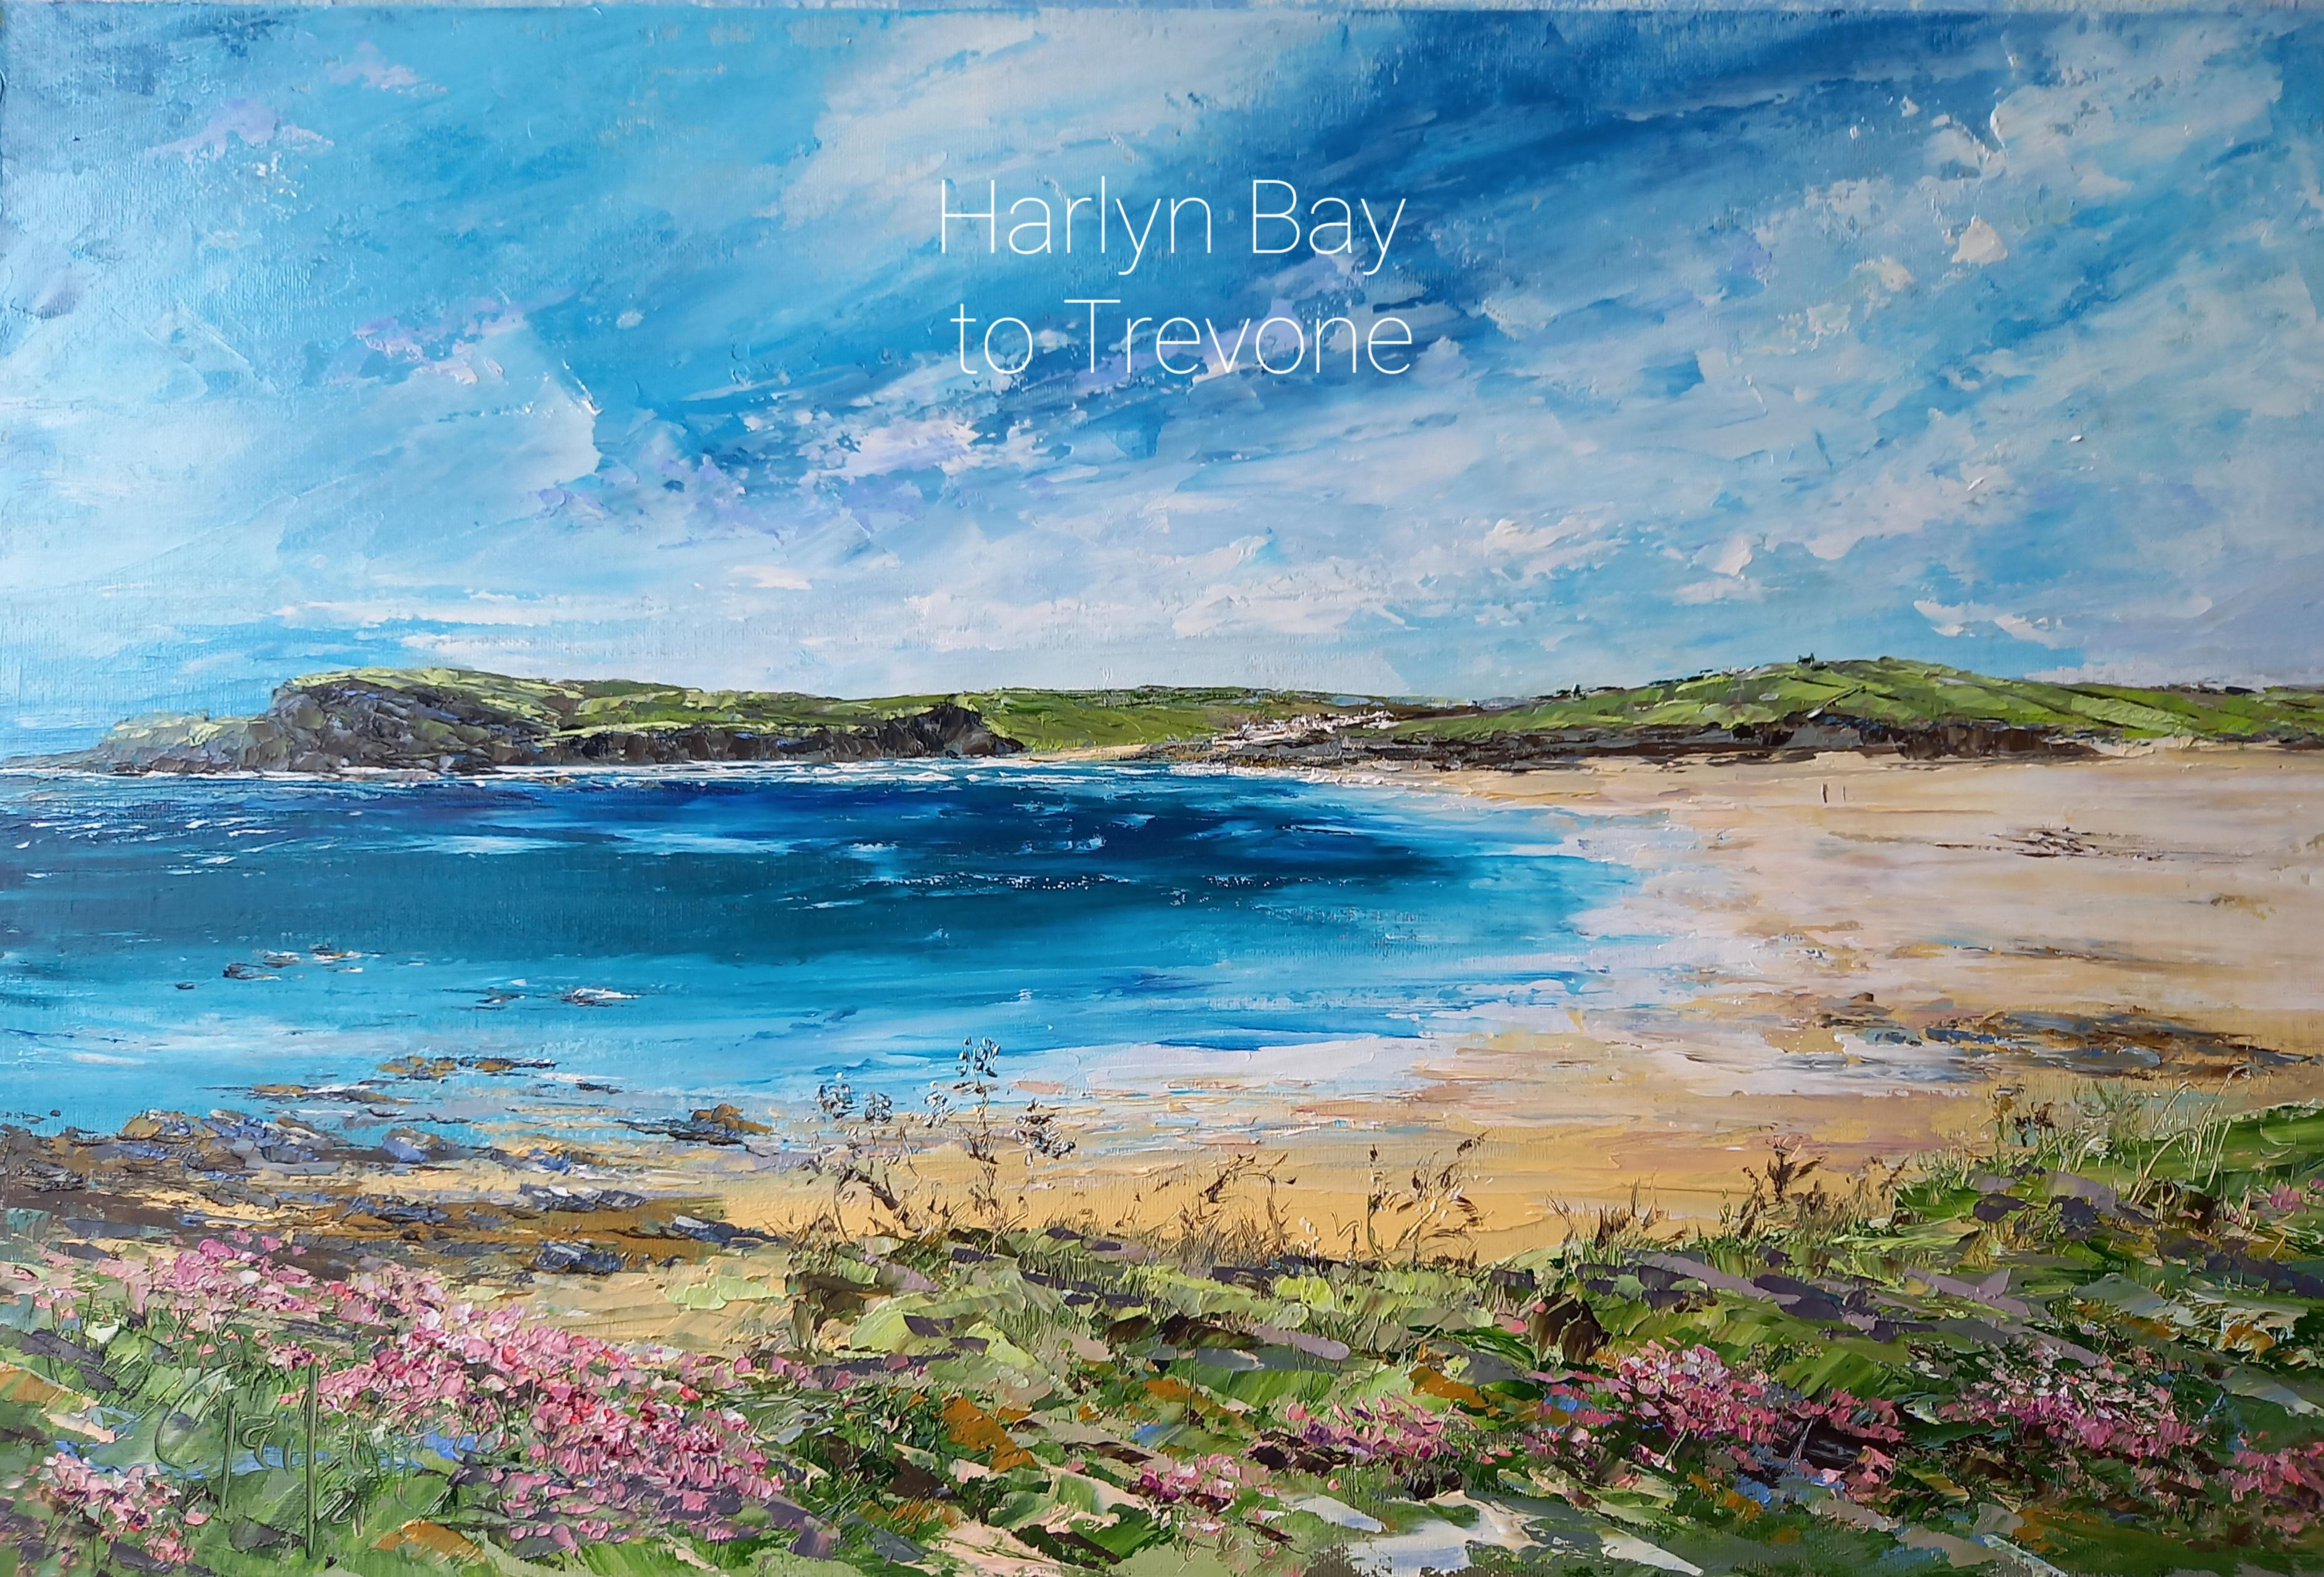 'Harlyn Bay to Trevone' - original oil painting £395